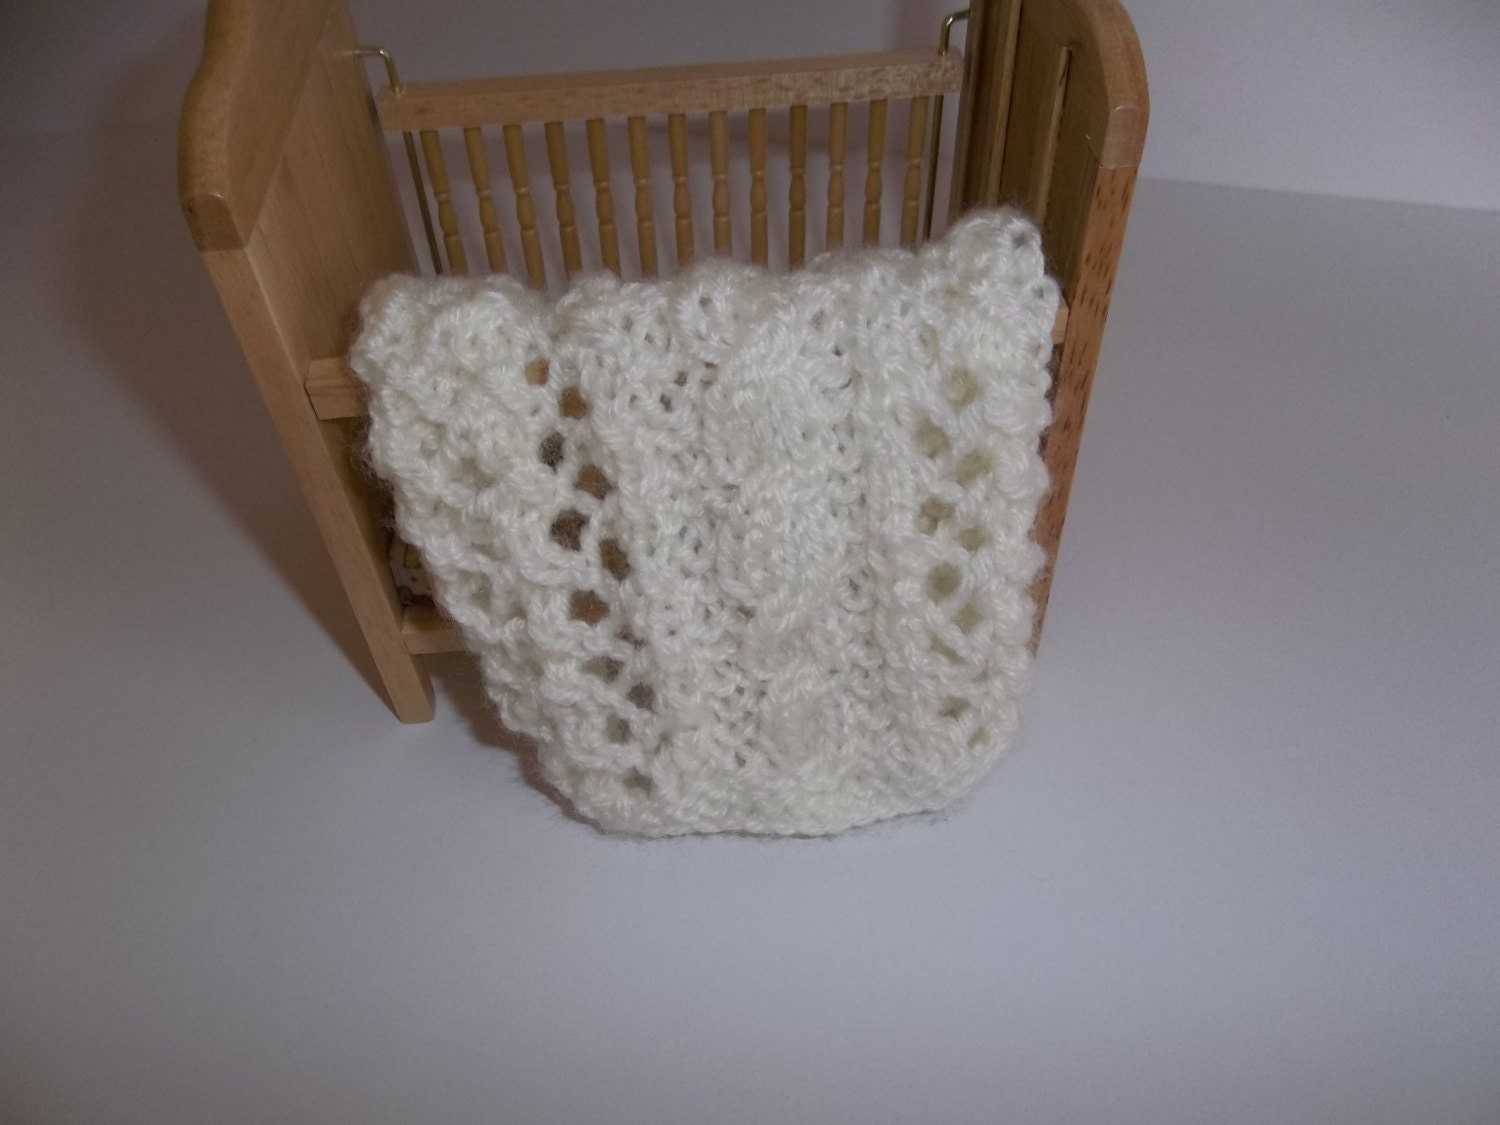 Antique White/Ivory Hand Knit Miniature Crib Blanket 1/12